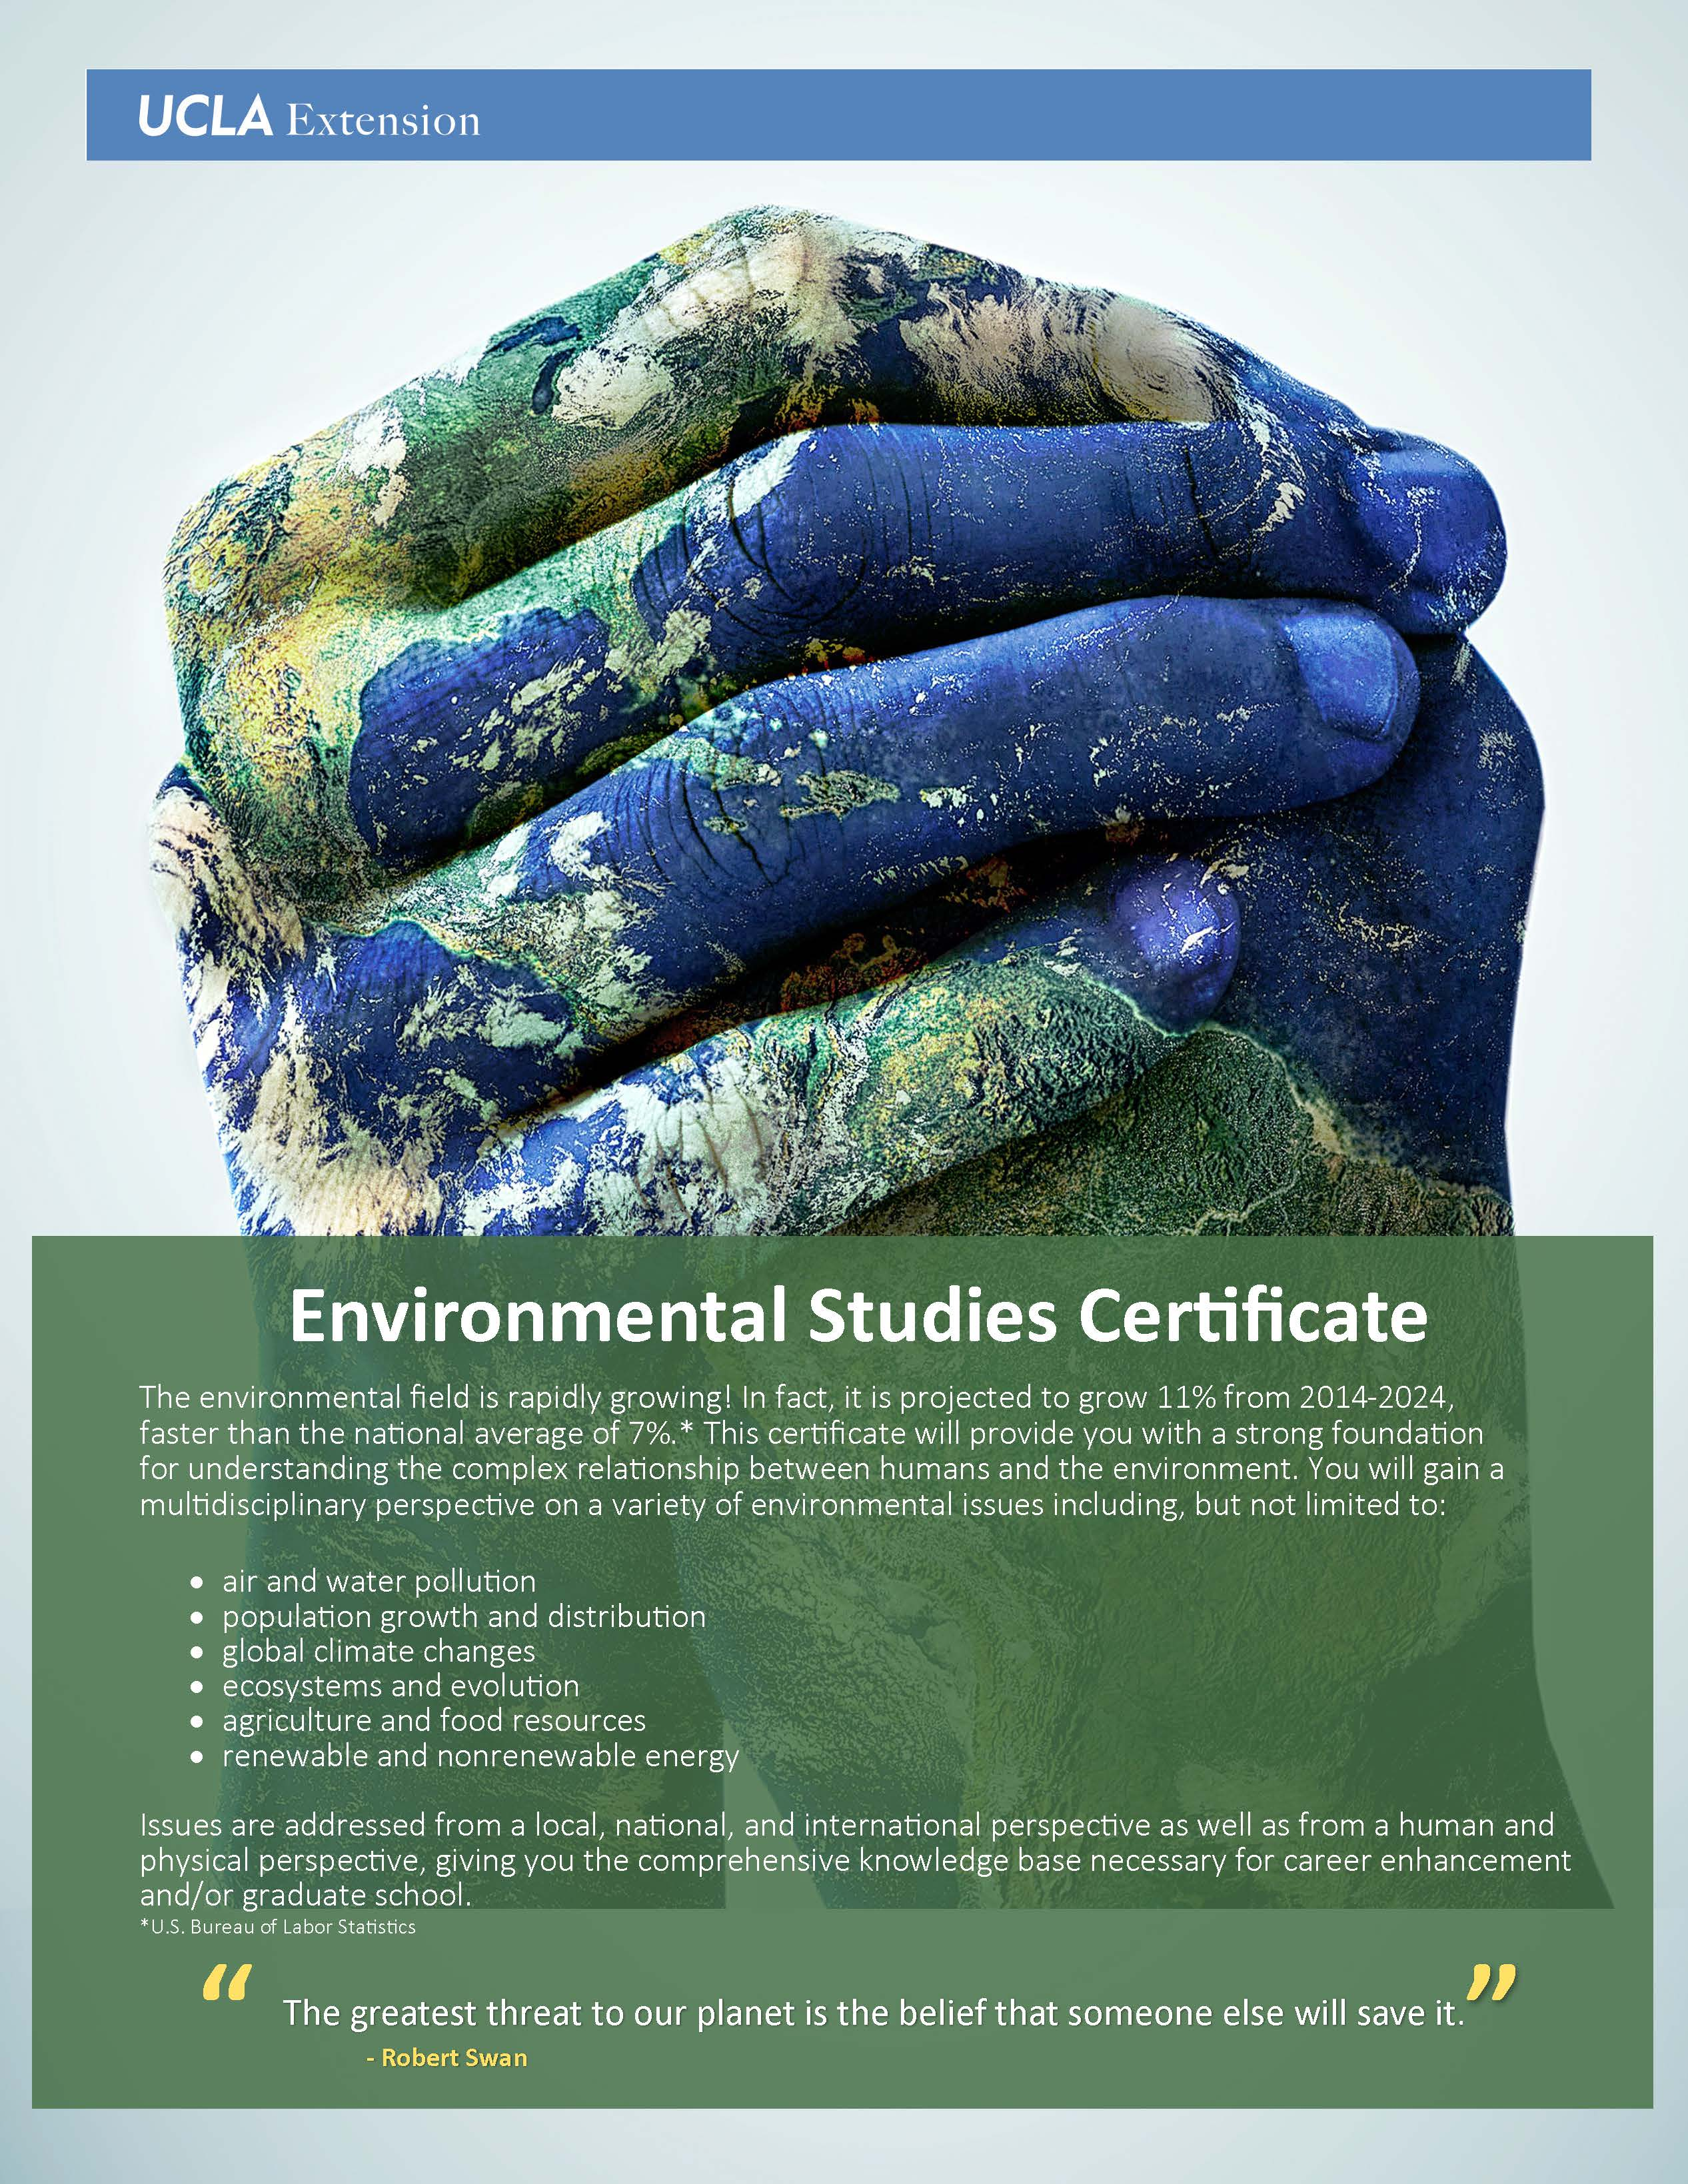 Graduate Programs in Environmental Science - GradSchools.com